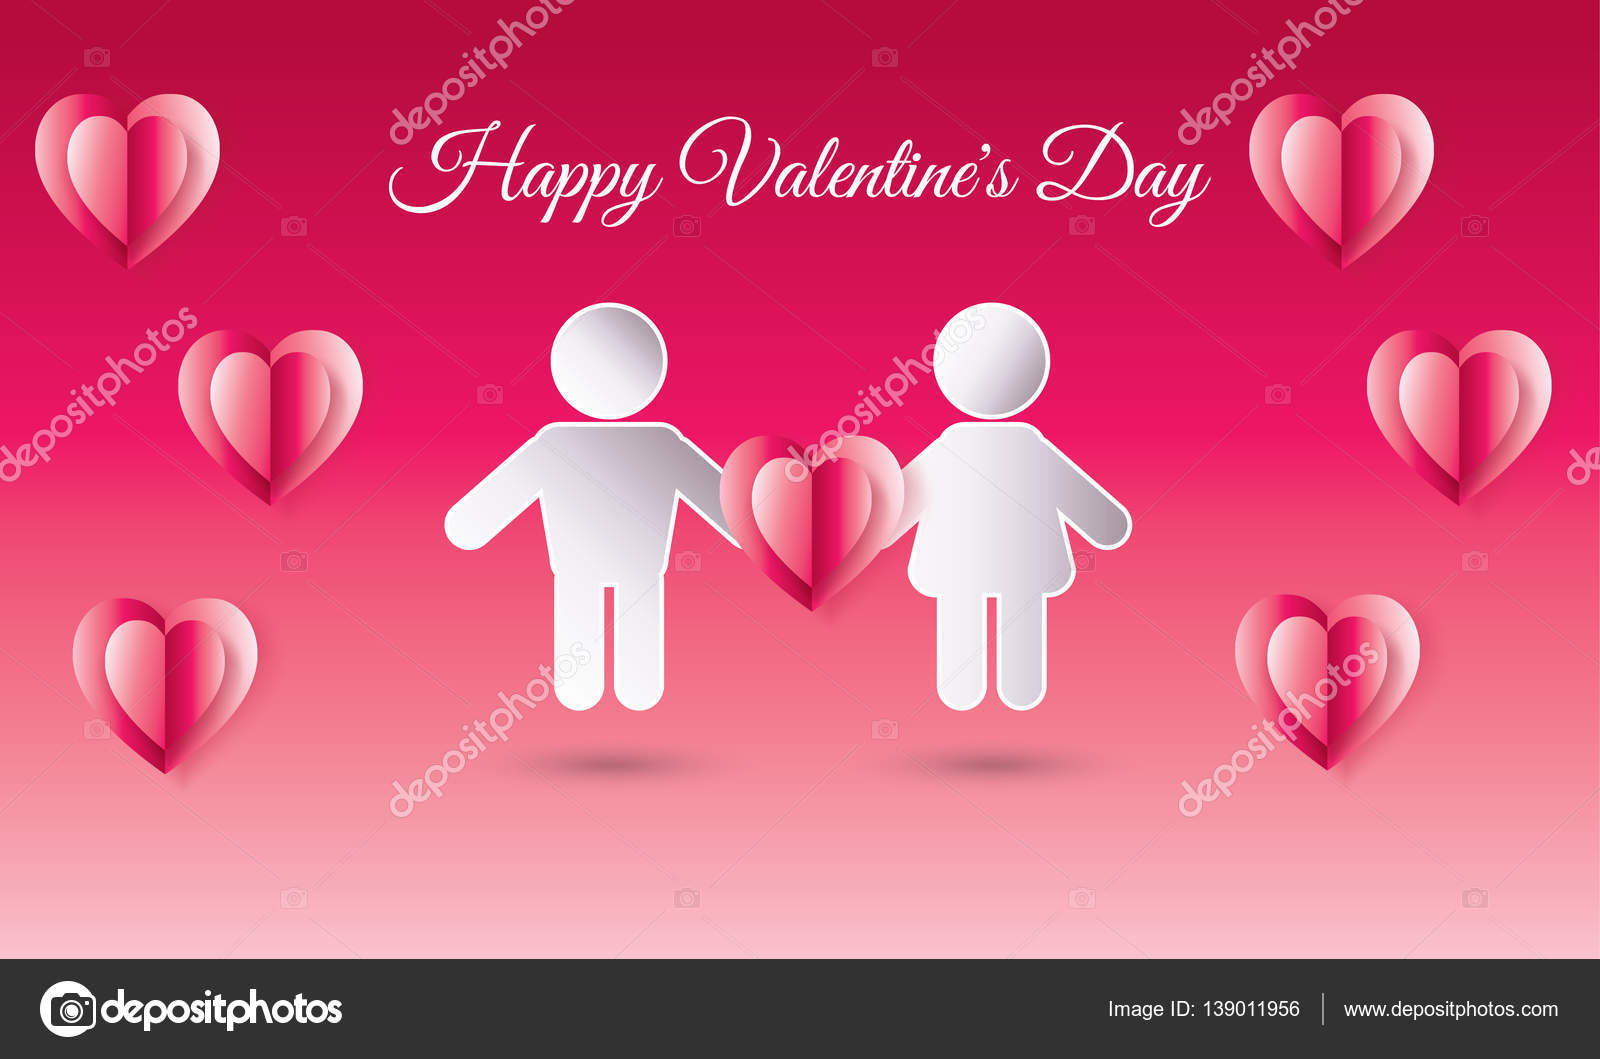 Happy Valentines Day Greeting Card Vector Illustration Romantic